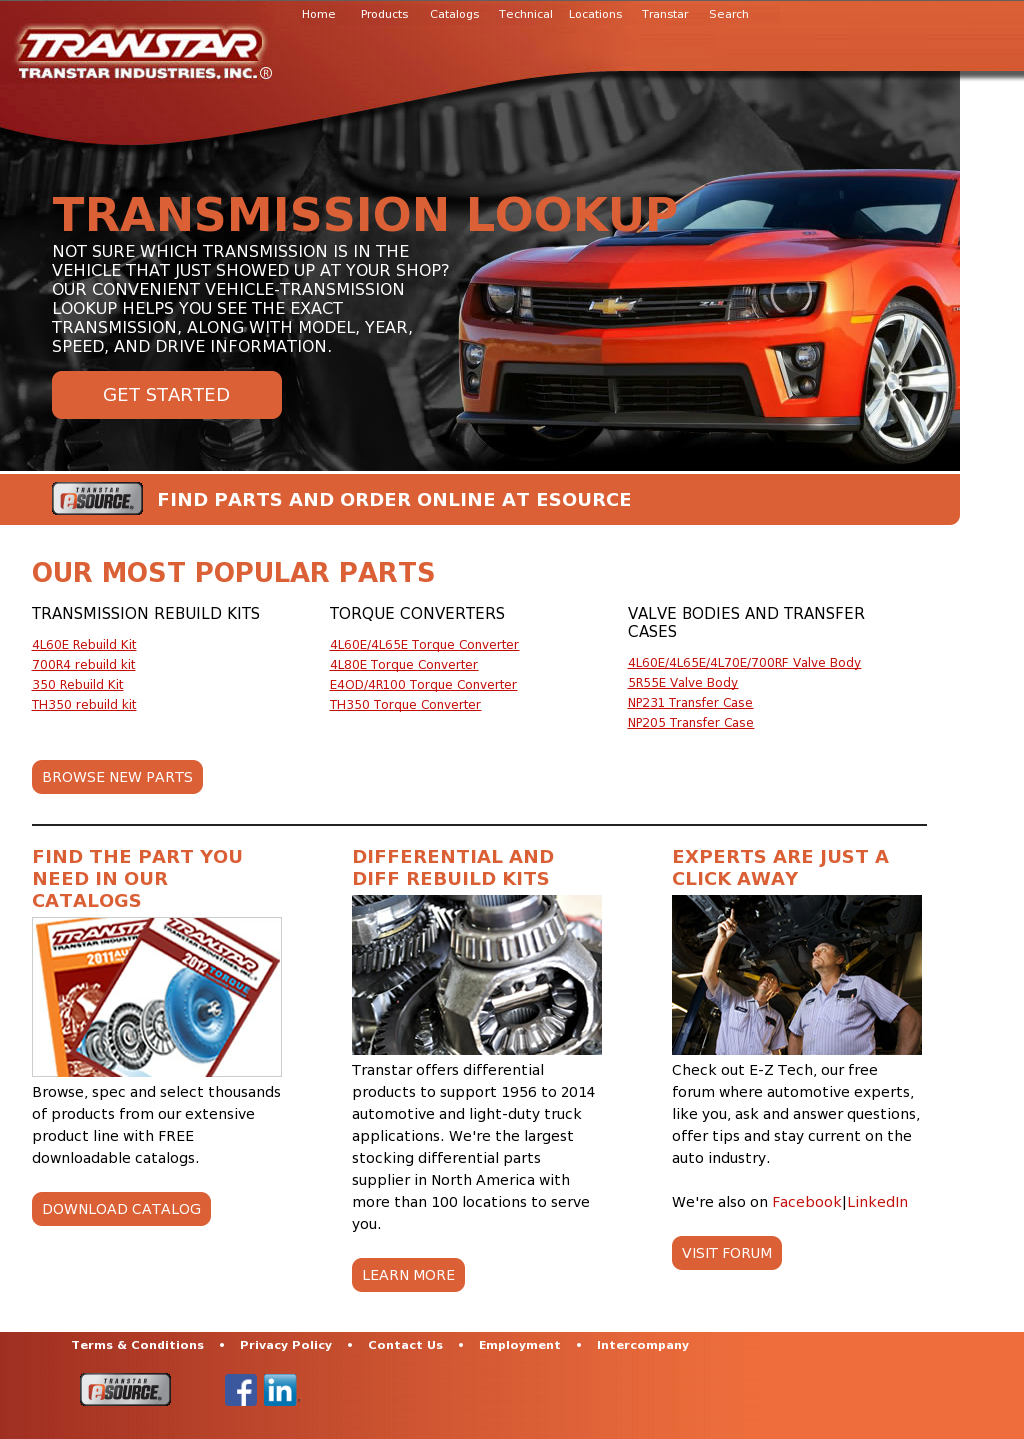 Transtar Competitors, Revenue and Employees - Owler Company